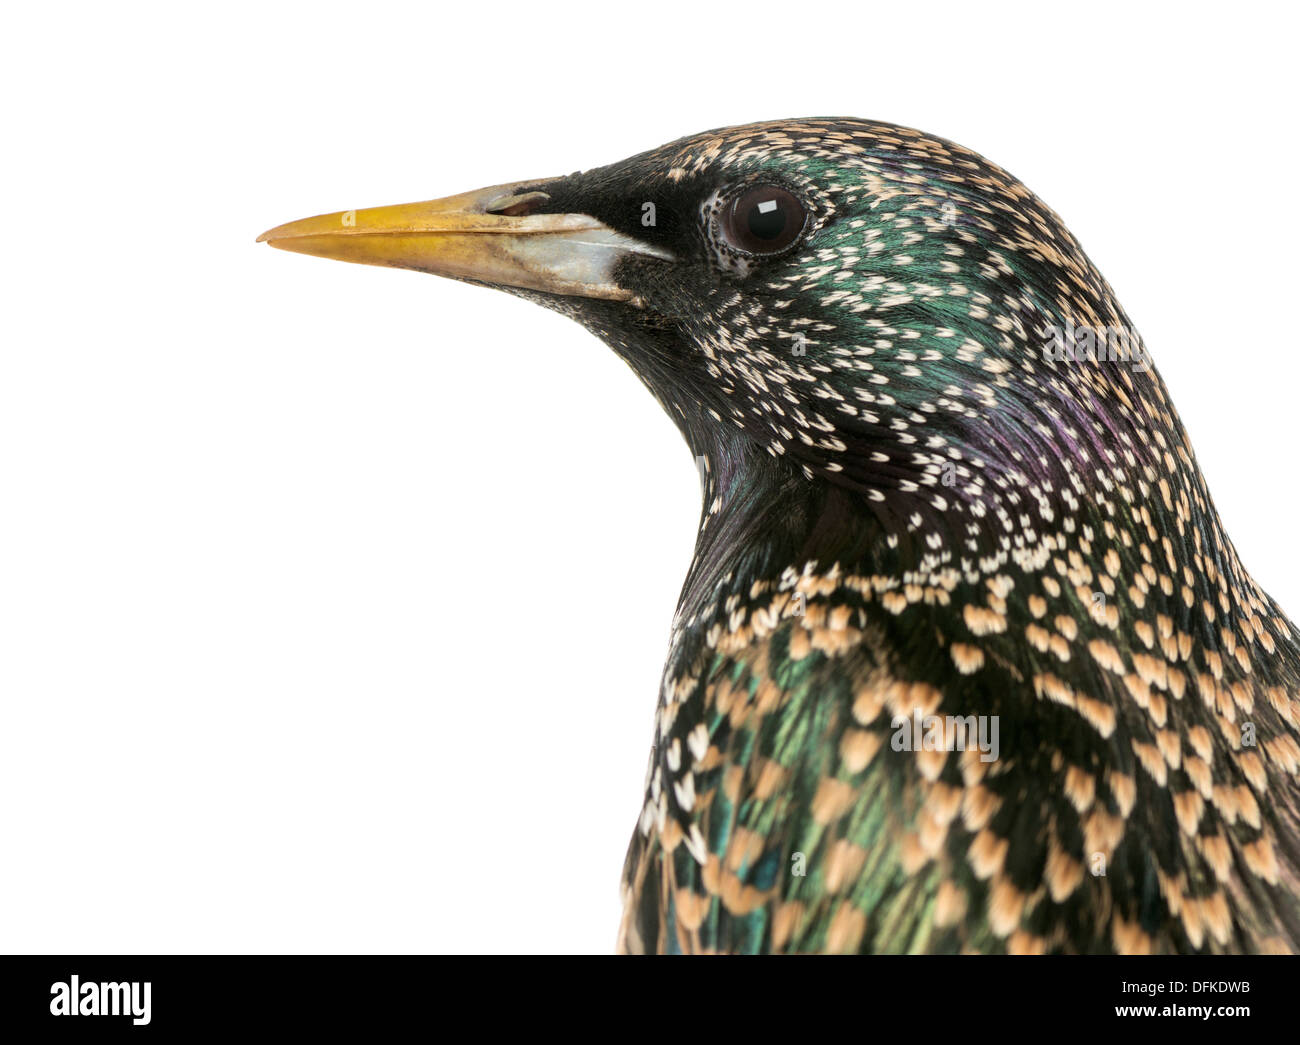 Close-up of a Common Starling, Sturnus vulgaris, against white background - Stock Image